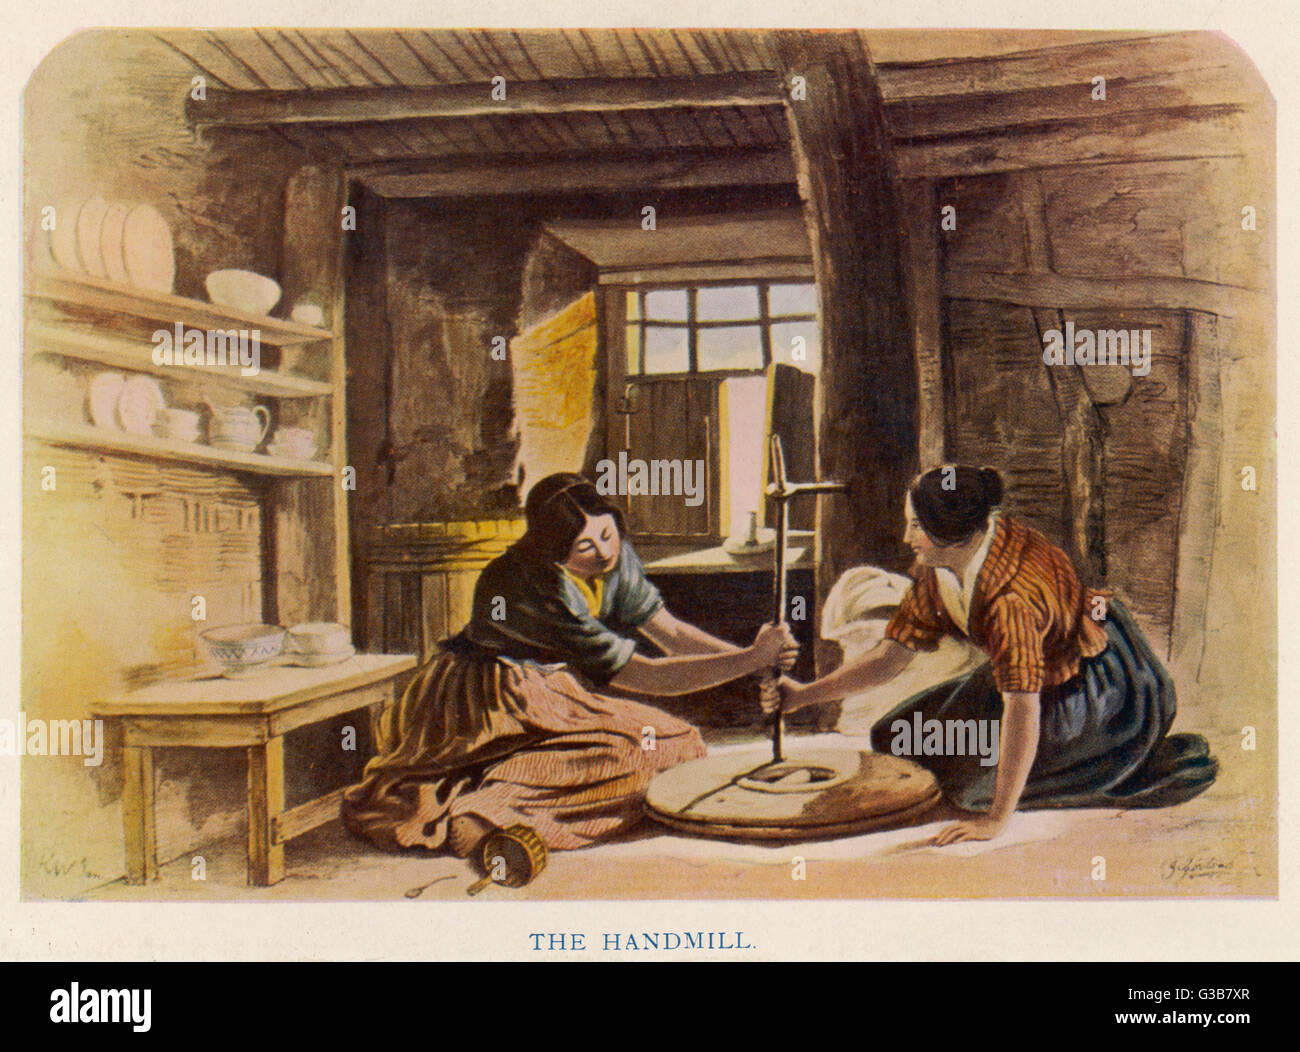 Two women use a handmill to  grind flour in a Scottish  cabin       Date: 1848 - Stock Image